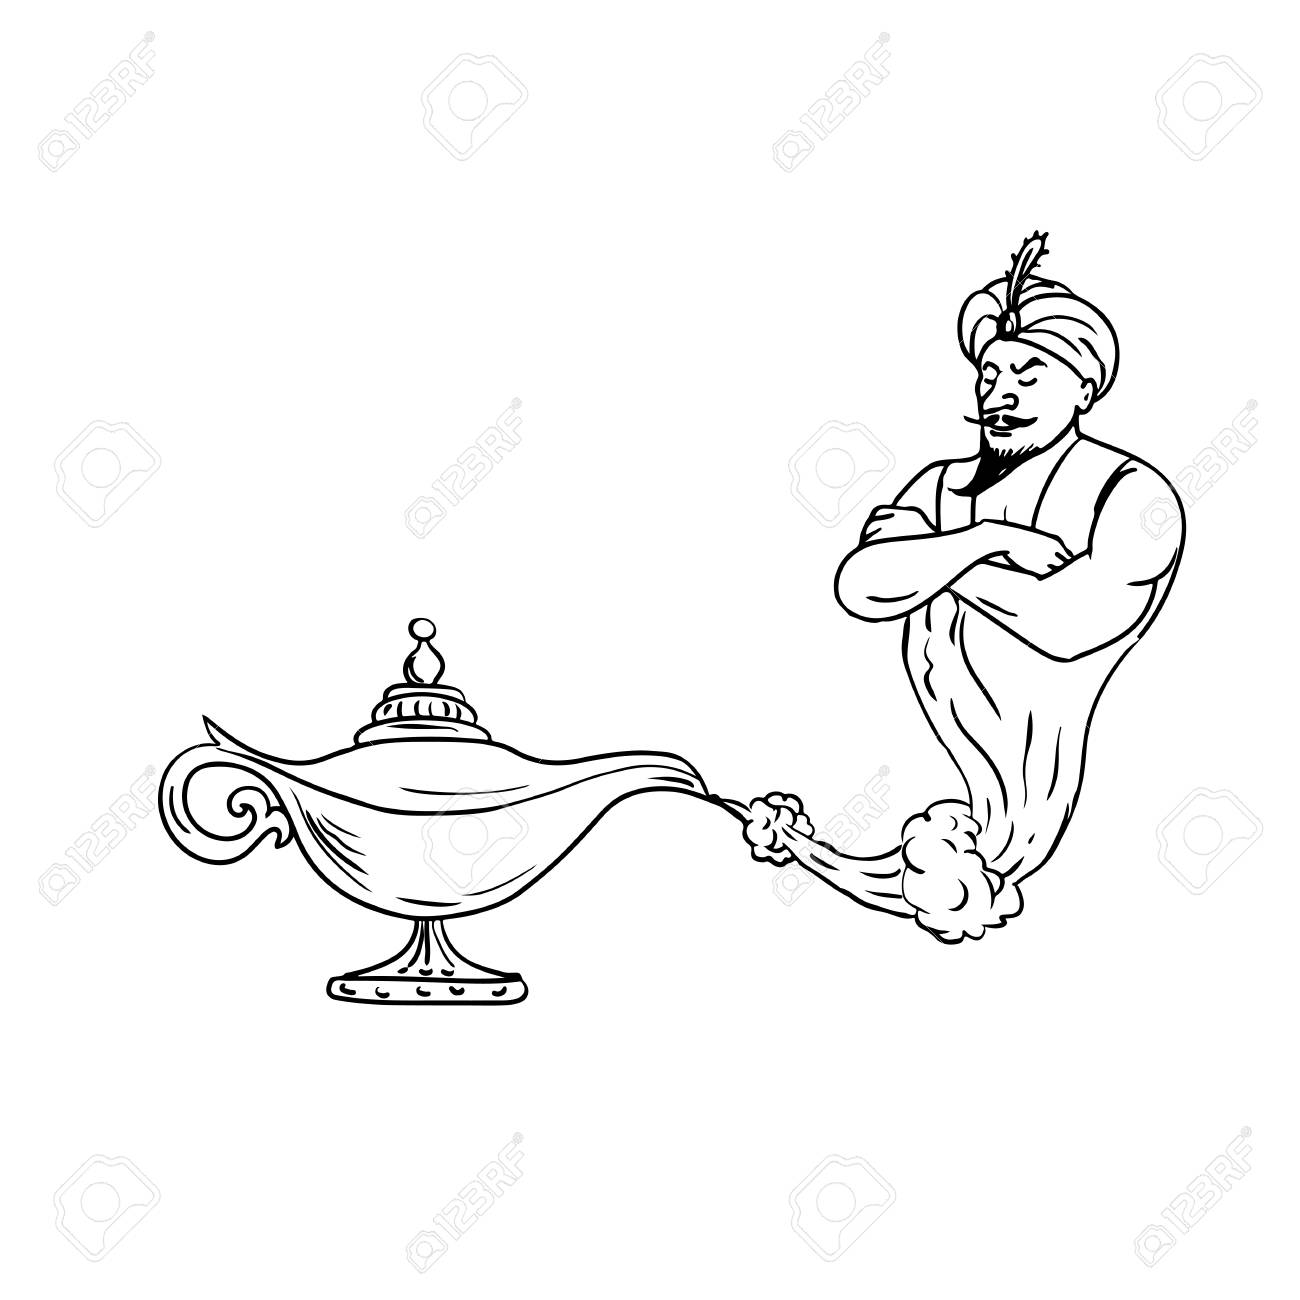 Drawing sketch style illustration of an arabian genie coming